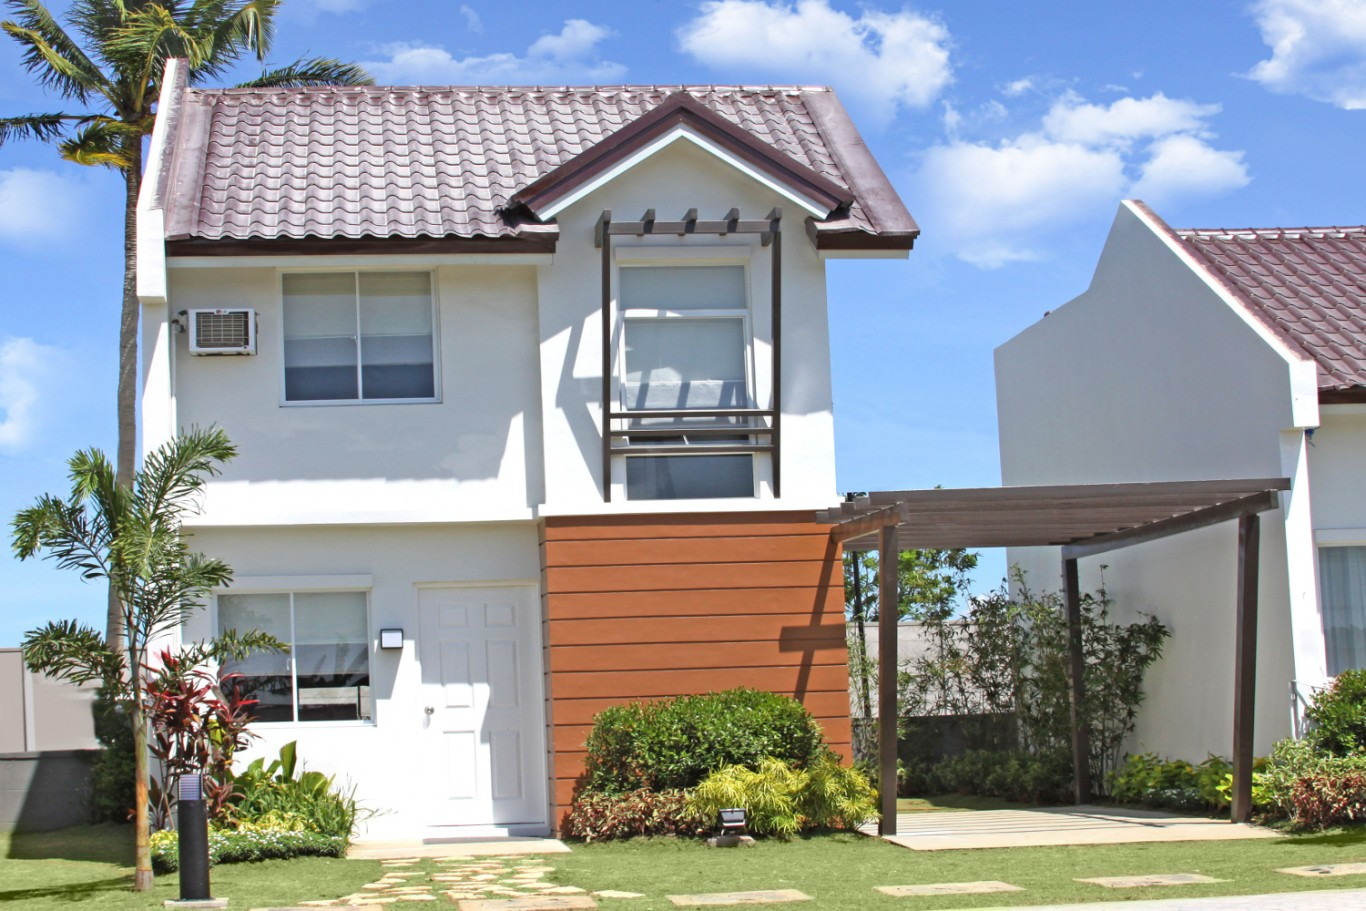 low cost housing in the philippines: affordable house cavite